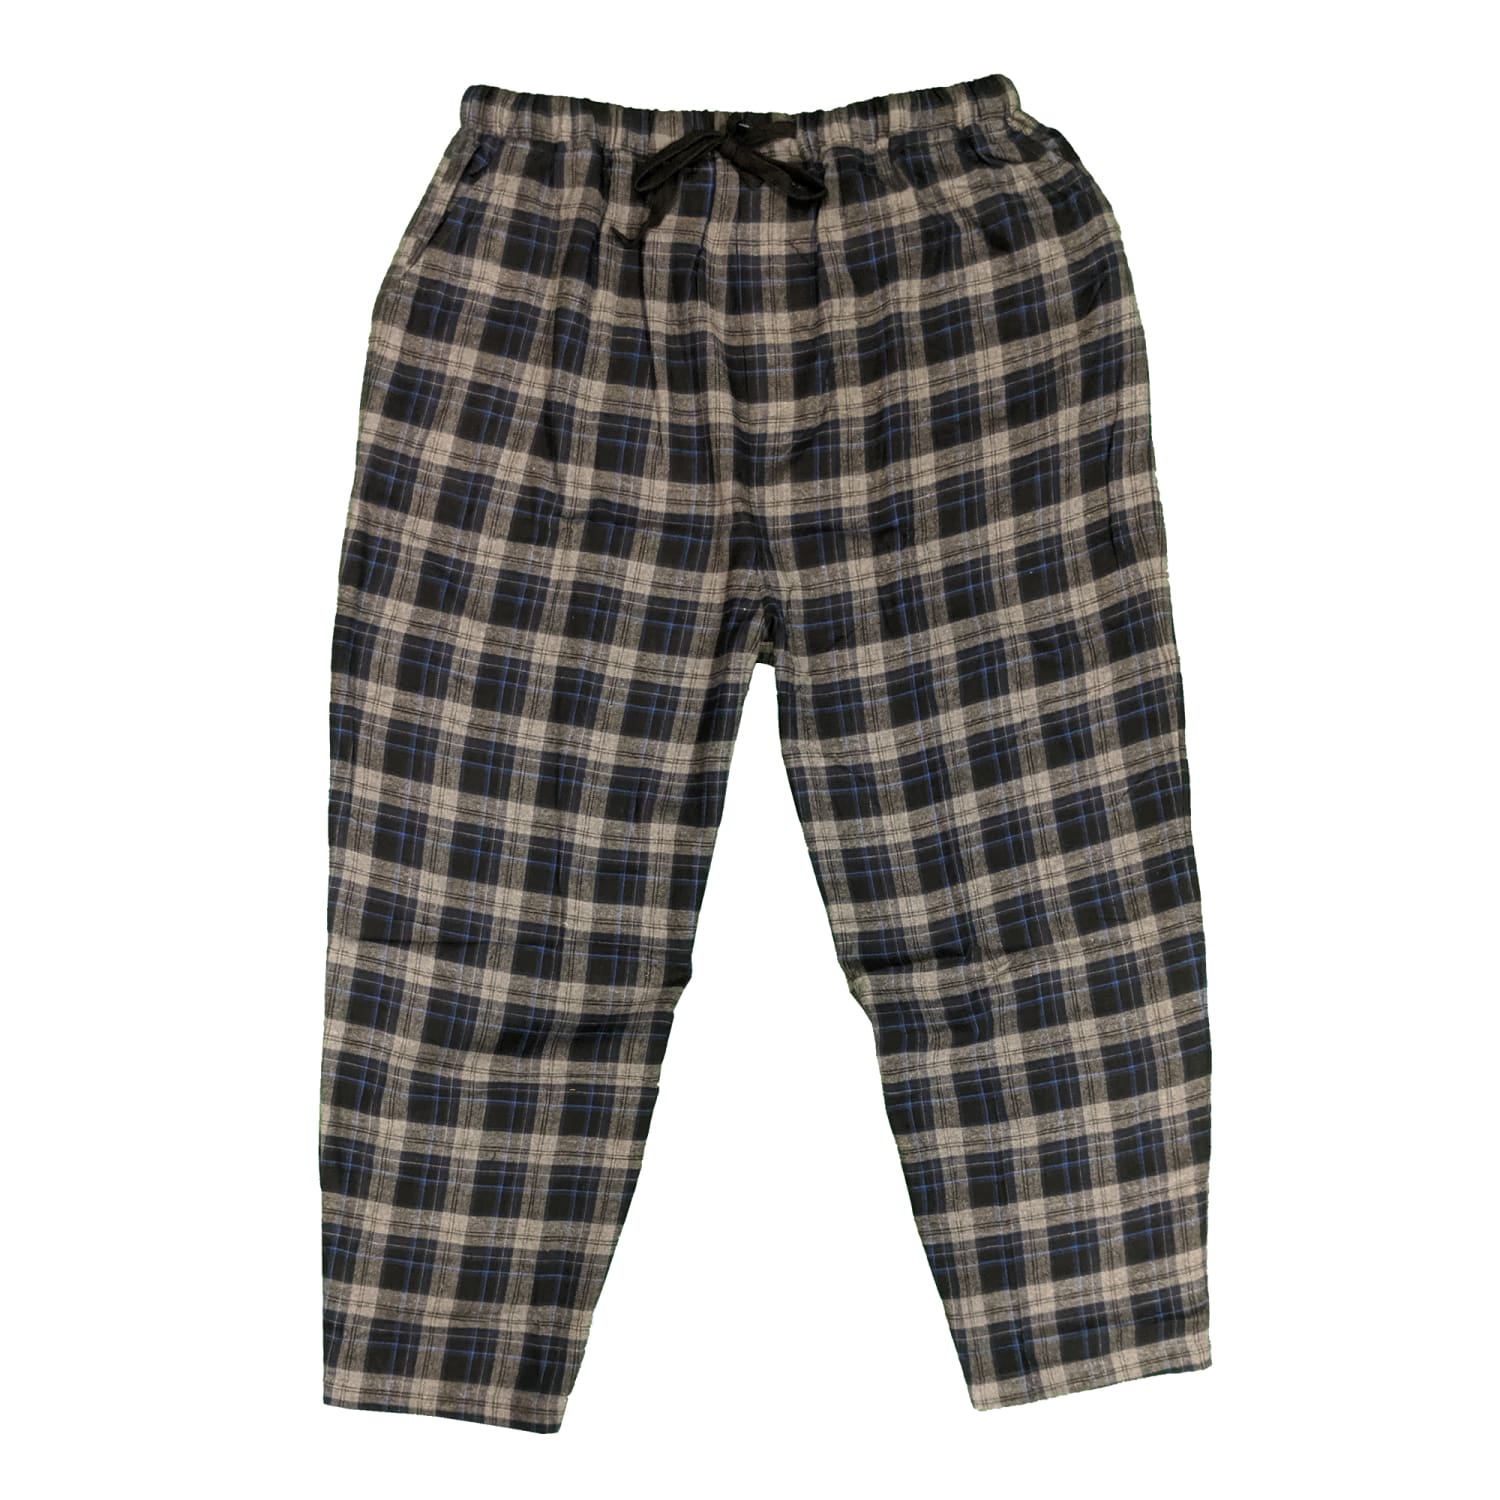 Espionage Lounge Trousers - PJ117 - Check 1